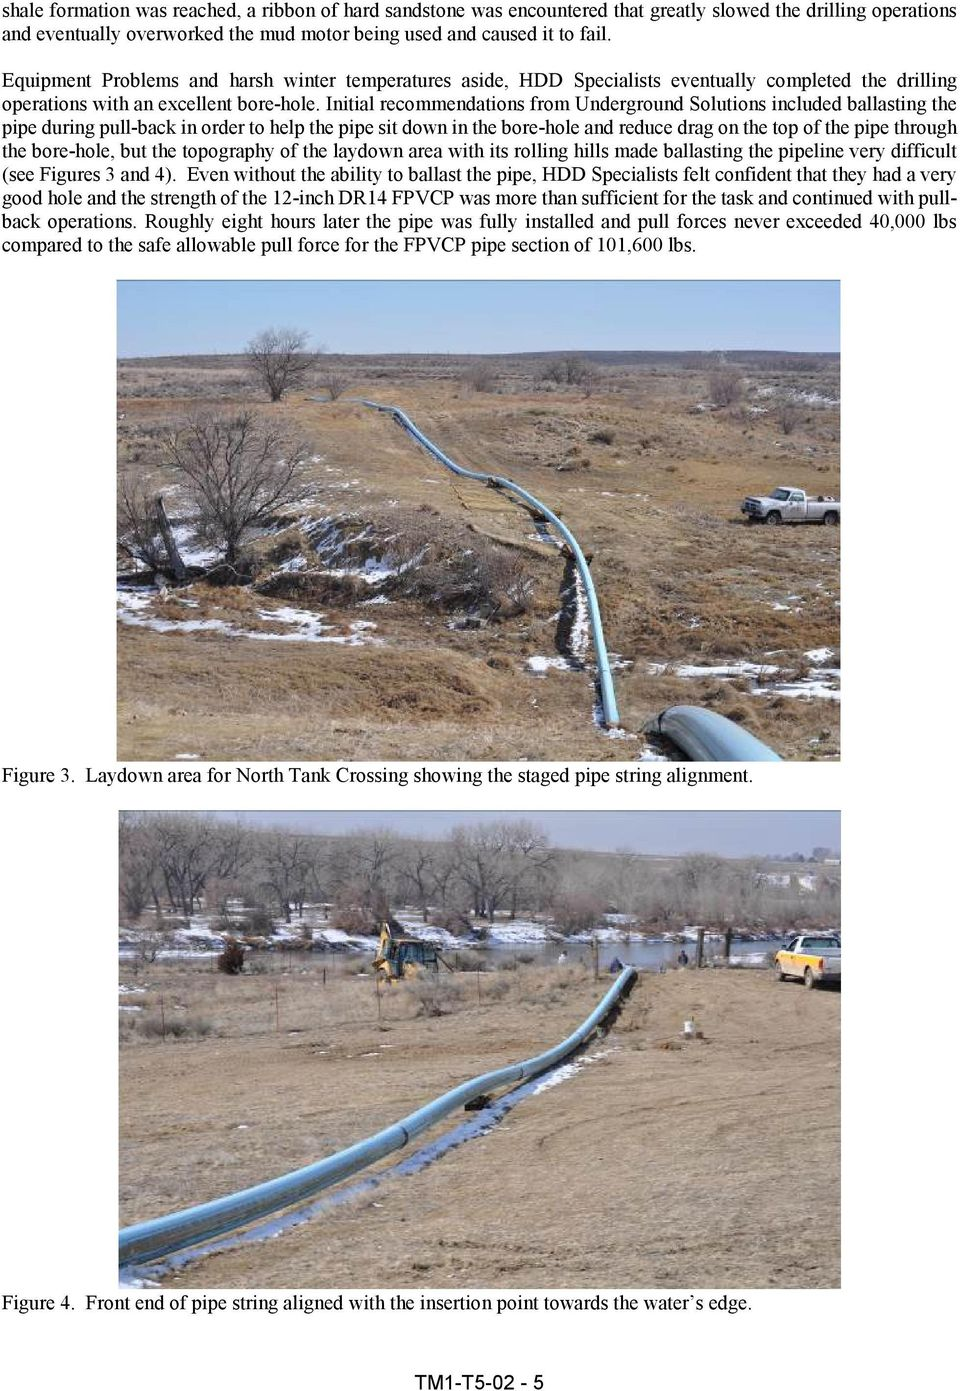 Initial recommendations from Underground Solutions included ballasting the pipe during pull-back in order to help the pipe sit down in the bore-hole and reduce drag on the top of the pipe through the